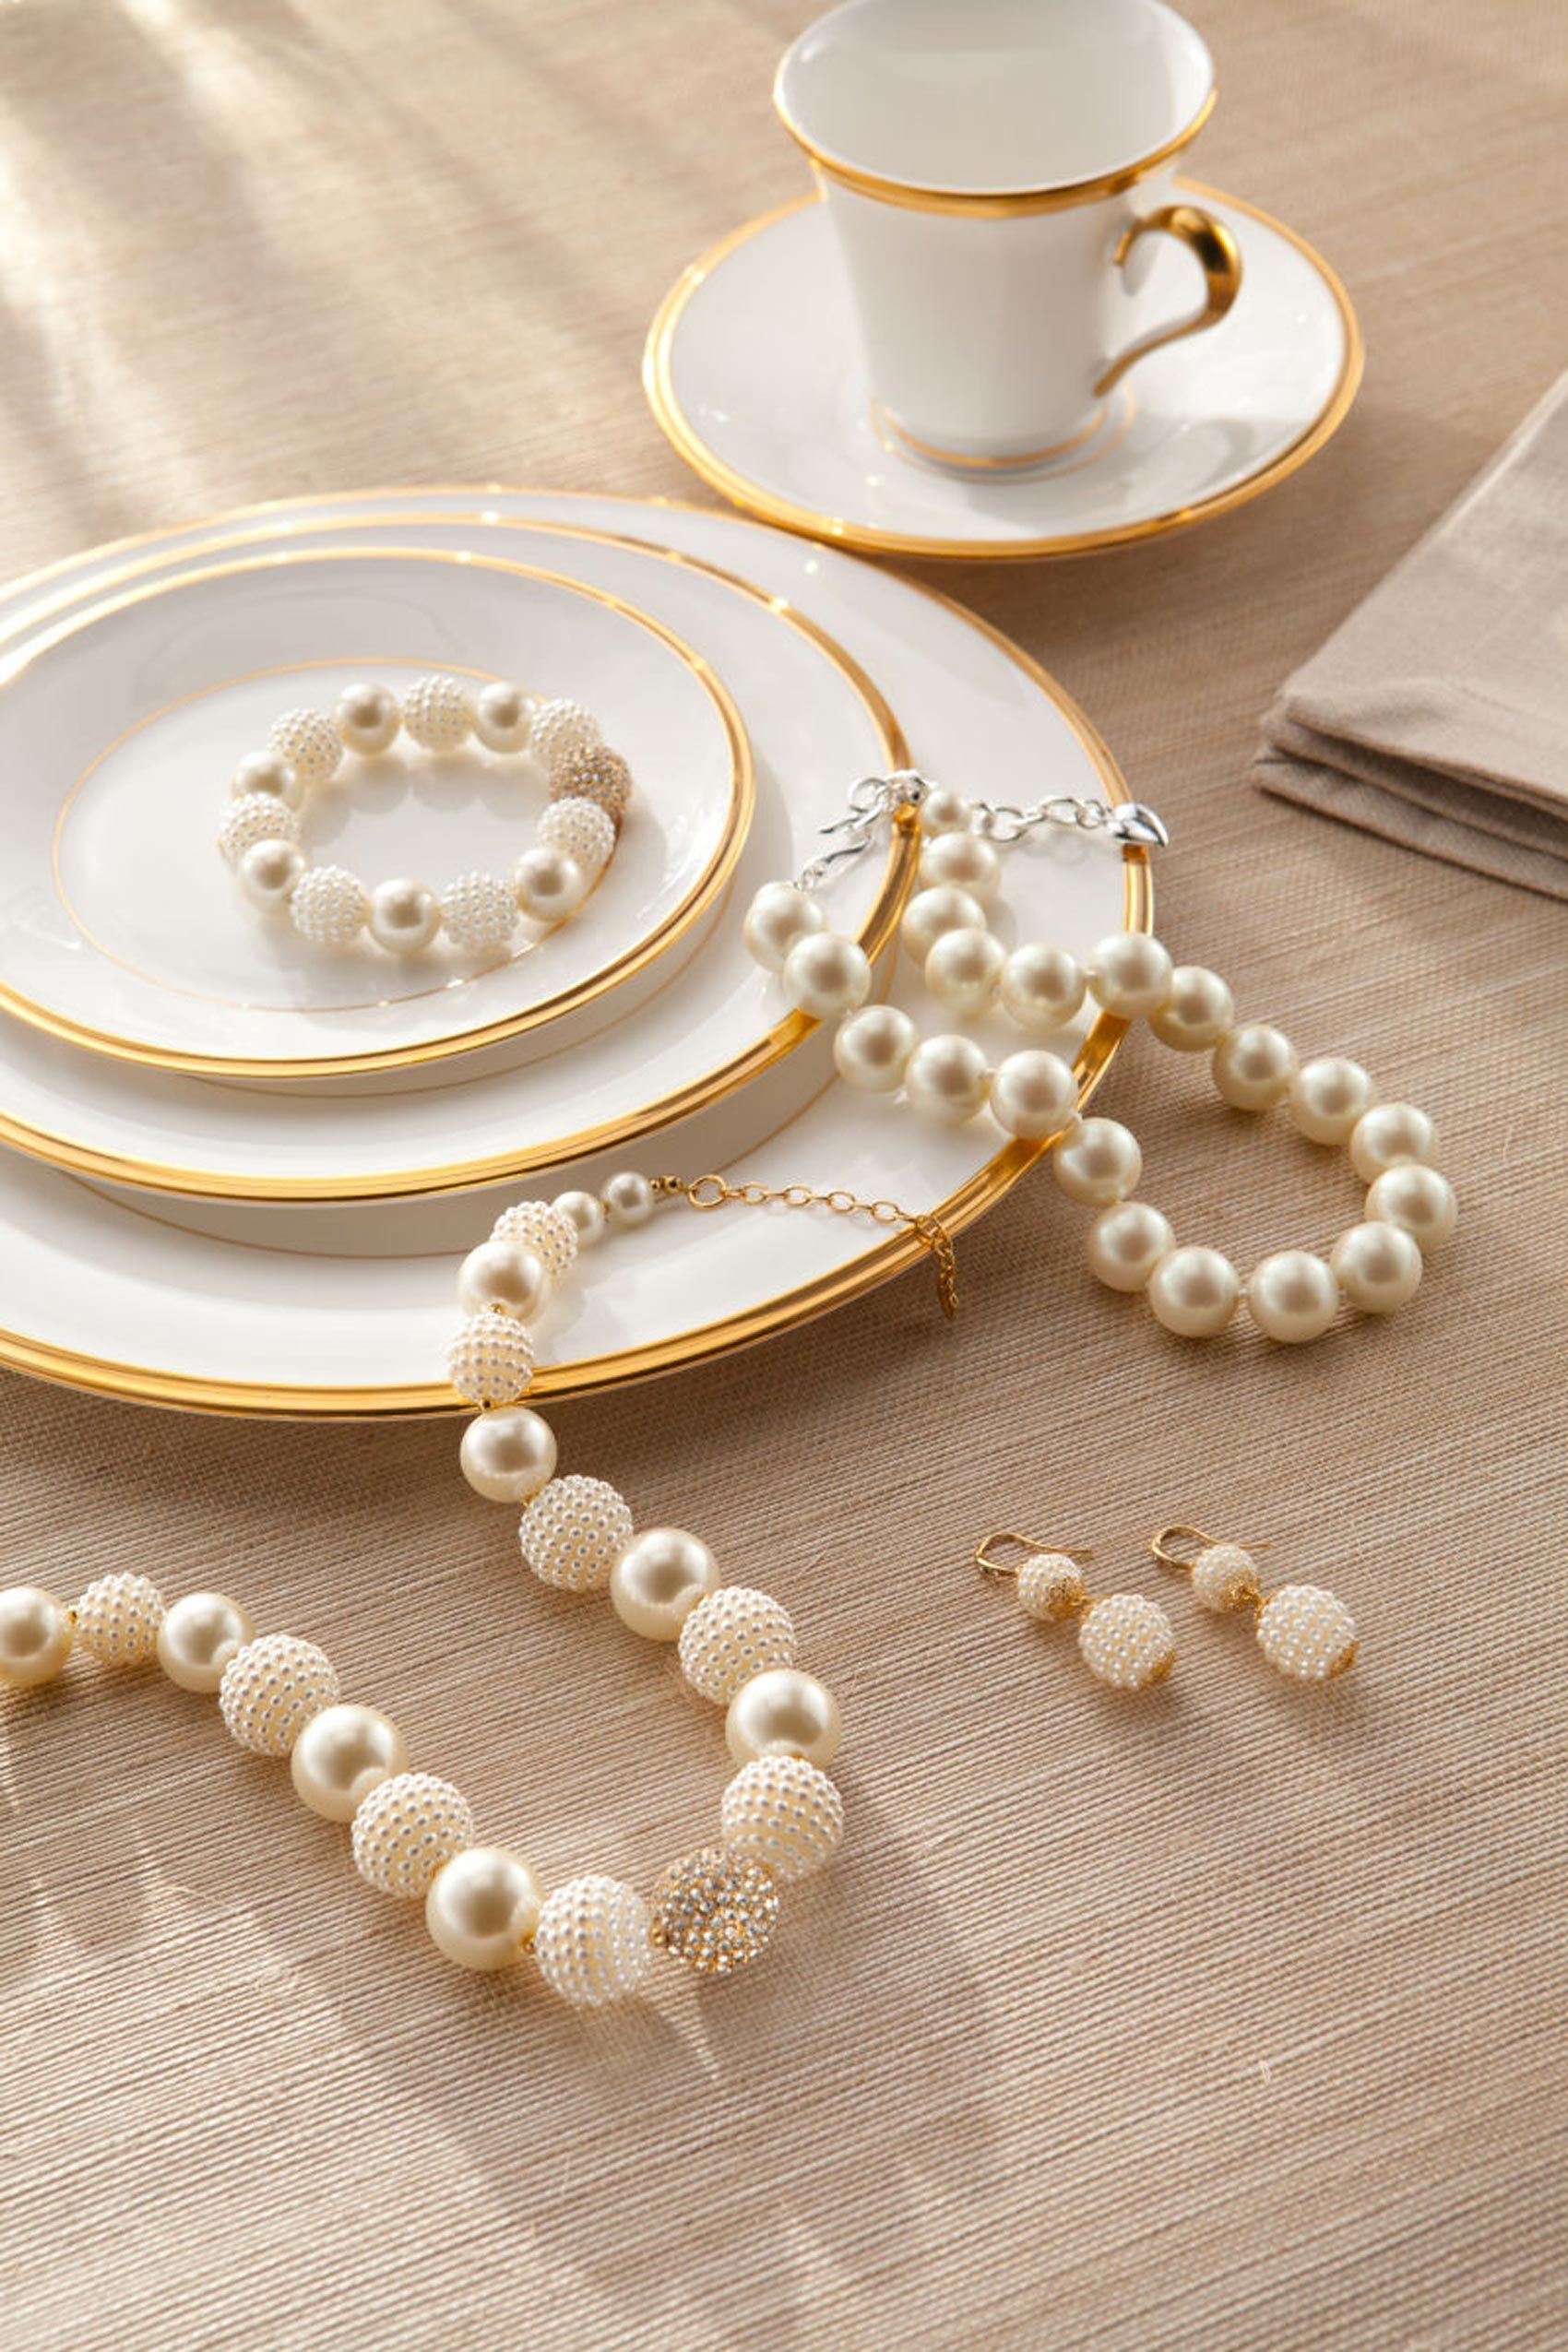 kate-spade-pearls-china.jpg